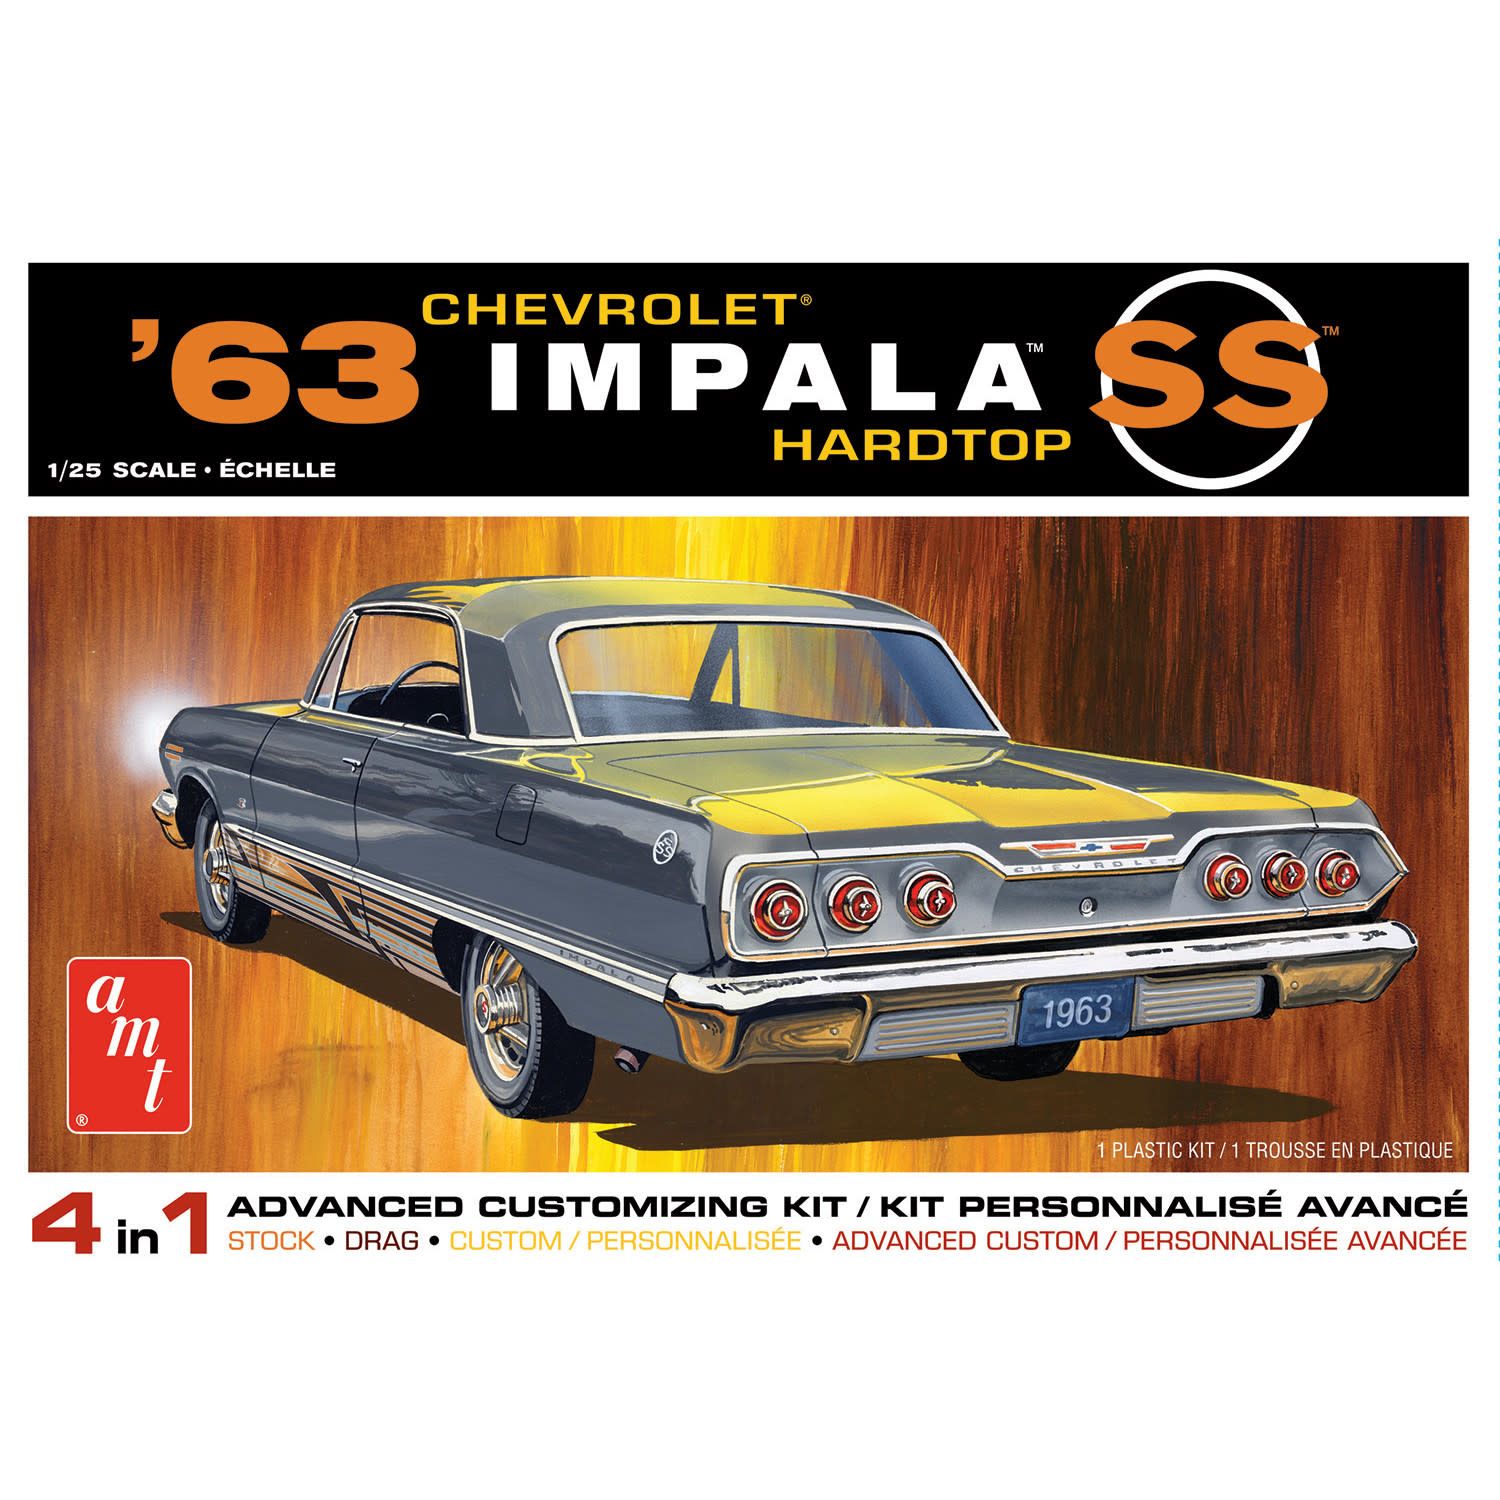 1/25 1963 Chevy Impala SS 4-in-1